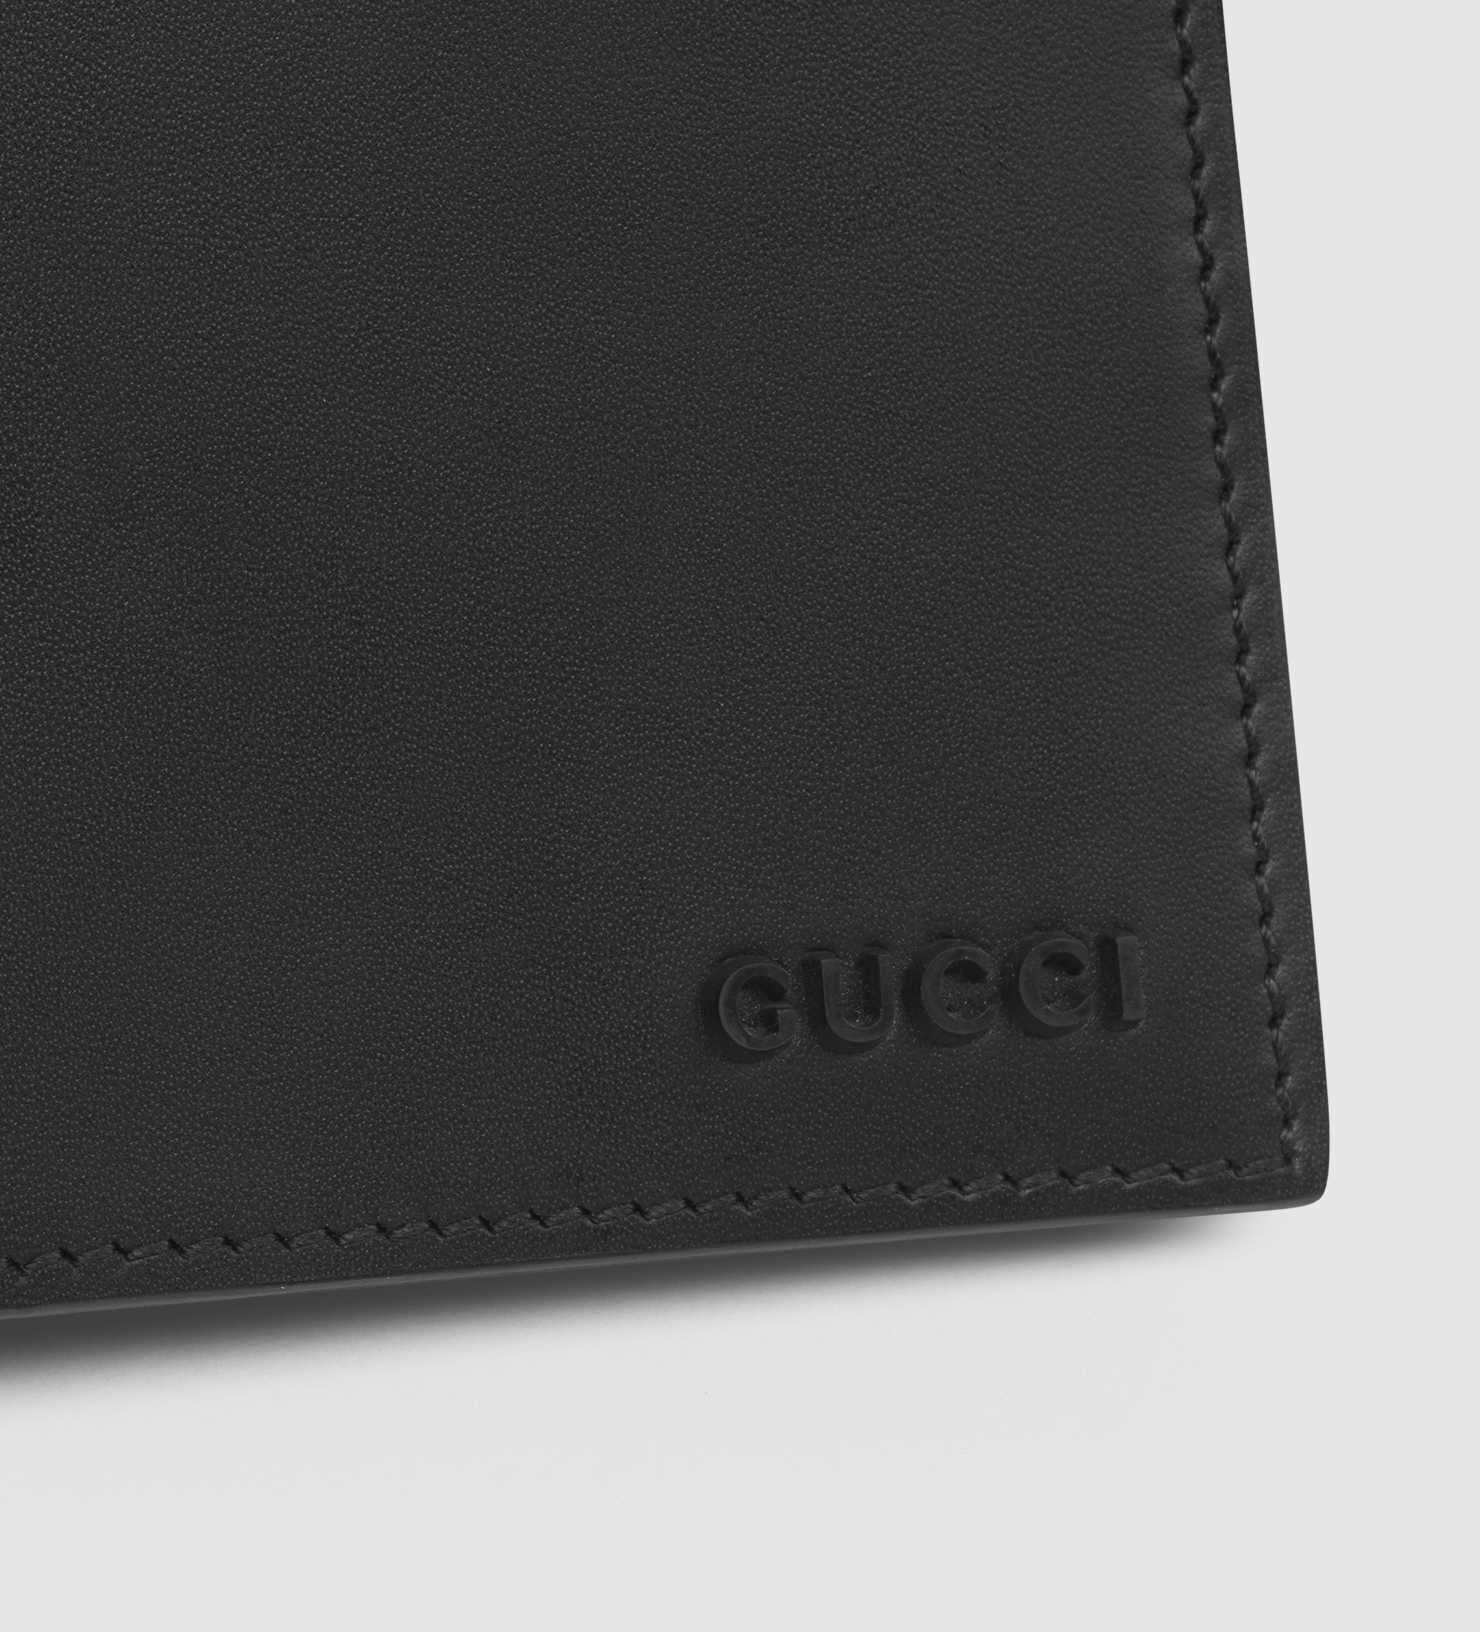 5ded555b093c Leather Gucci Wallet - Best Photo Wallet Justiceforkenny.Org